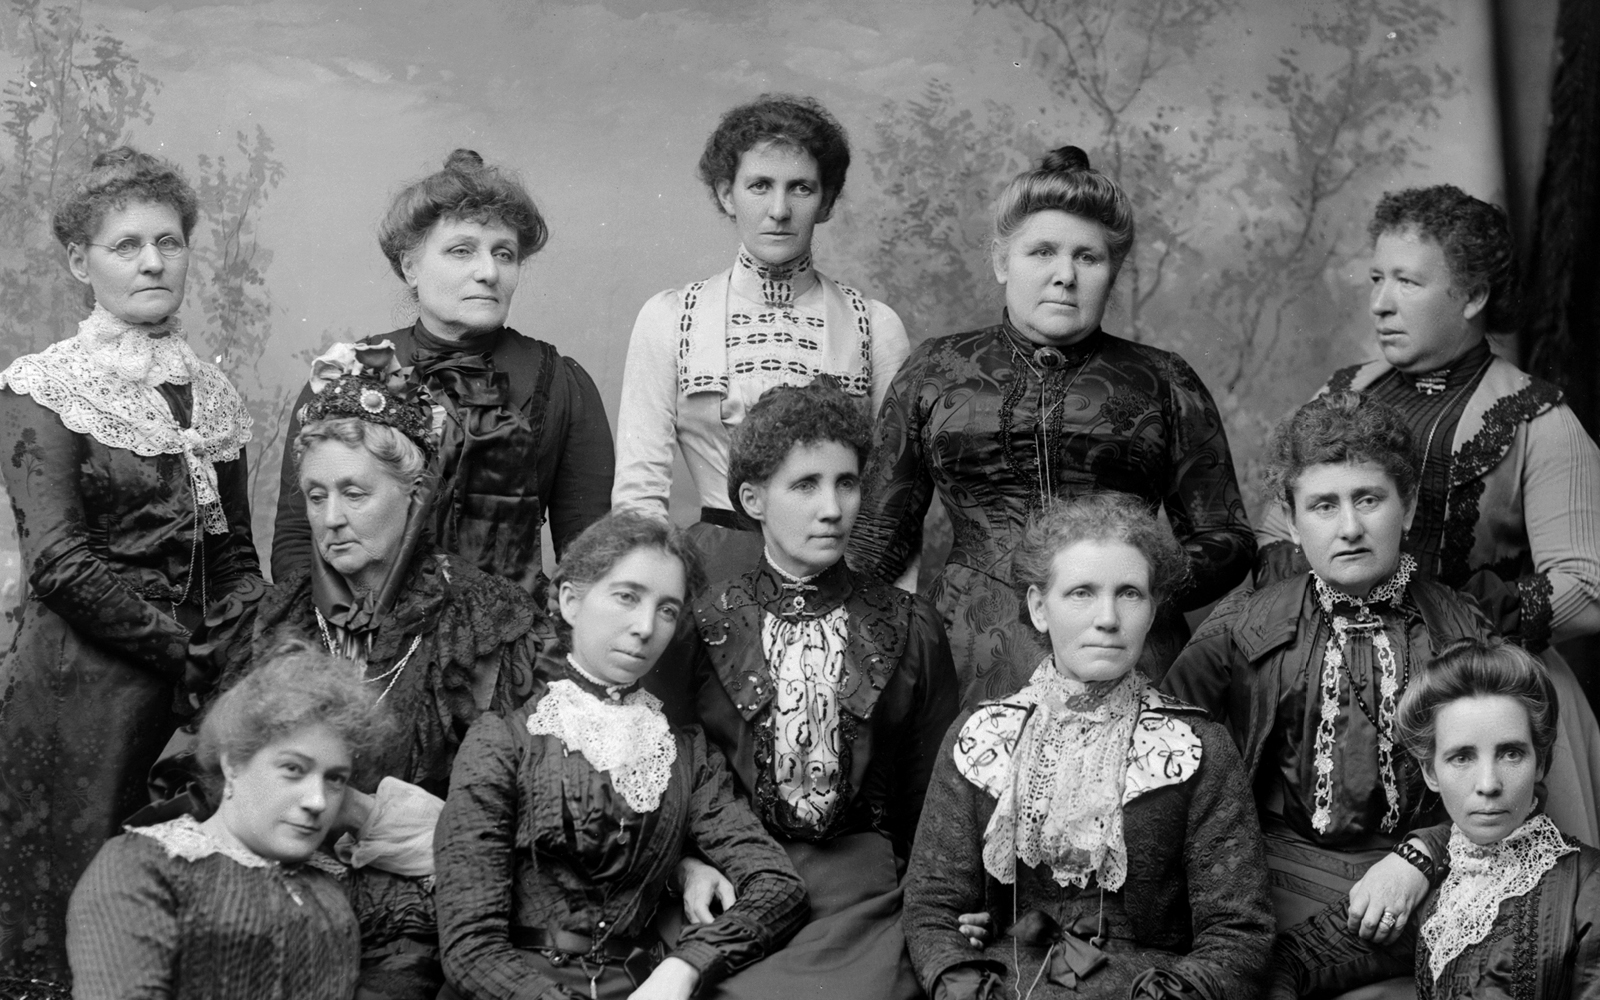 changing role of women in late 19th and early 20th century Only in the late 18th and early 19th centuries did or by unmarried young women many 19th-century american 19th century was also a period of change.